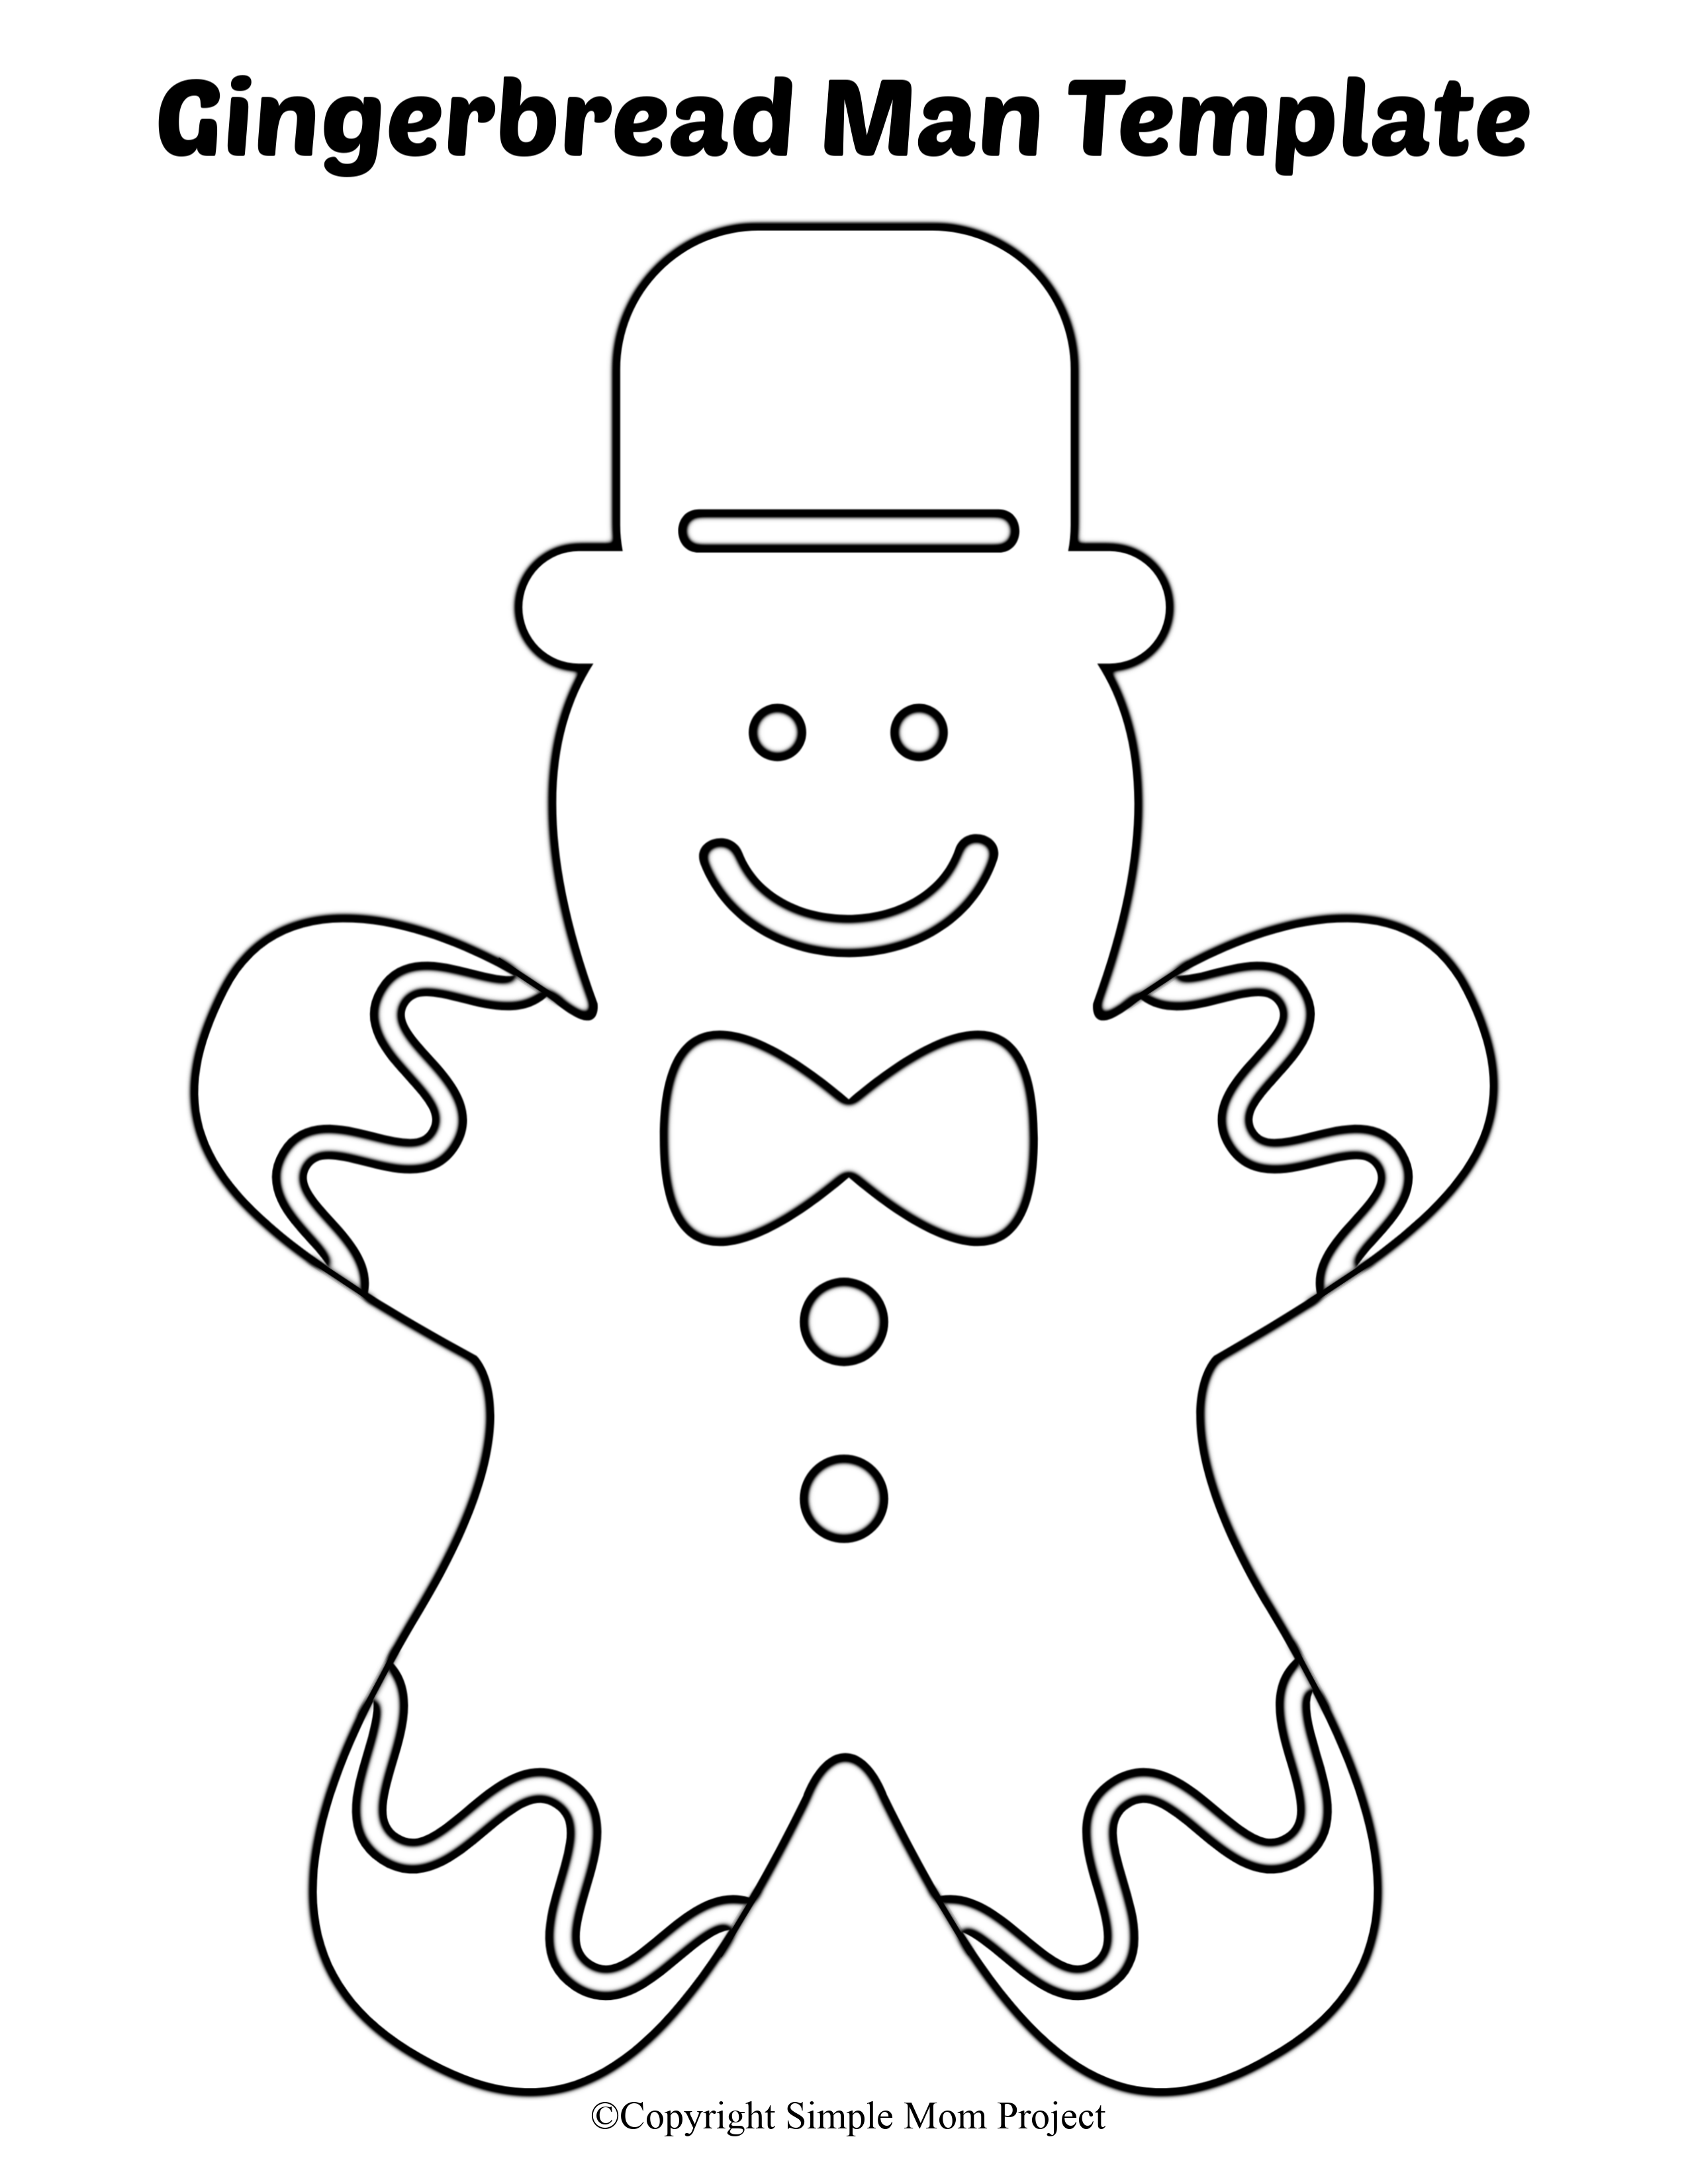 the gingerbread man template blank gingerbread man coloring page print color fun the gingerbread template man